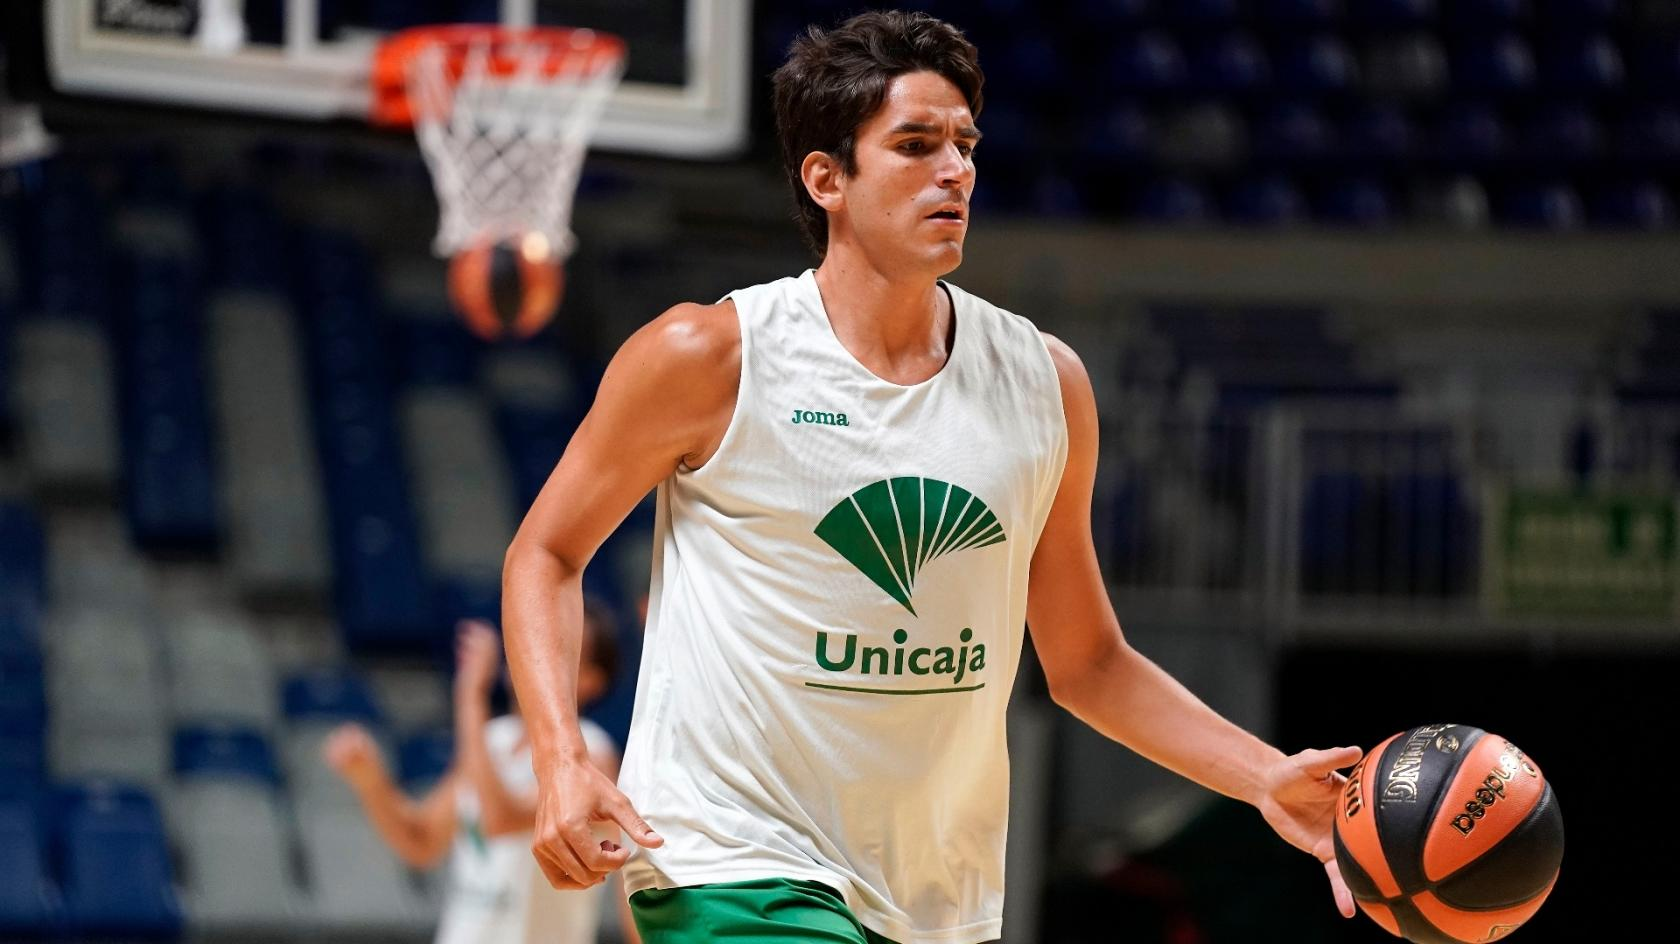 The statistical challenges of Unicaja 2020/21